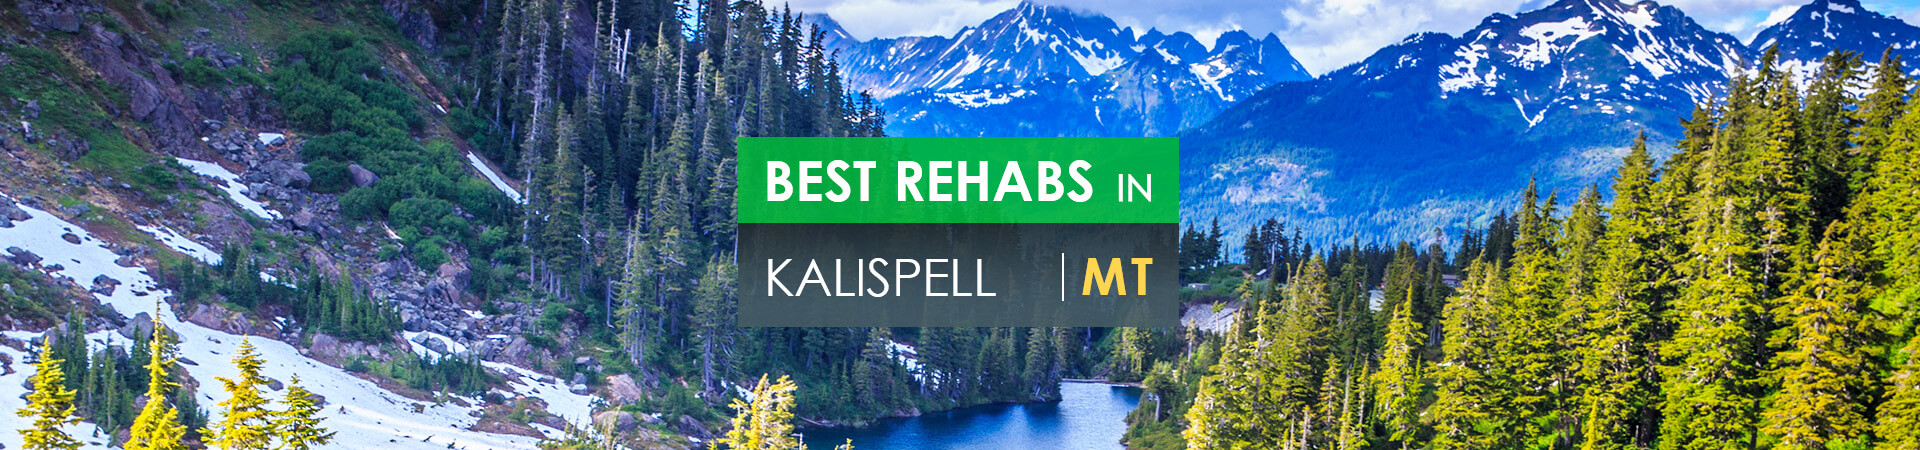 Best rehabs in Kalispell, MT